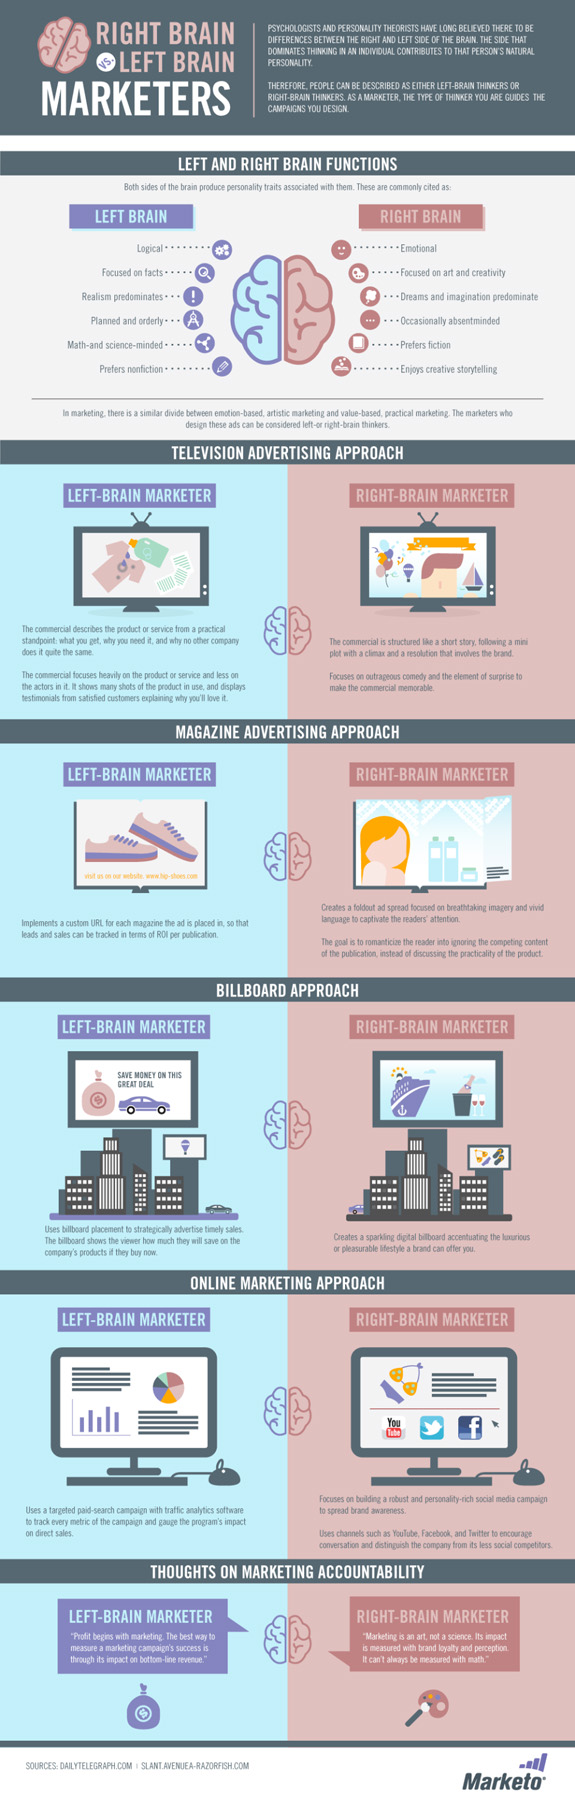 left-brain right-brain marketer infographic